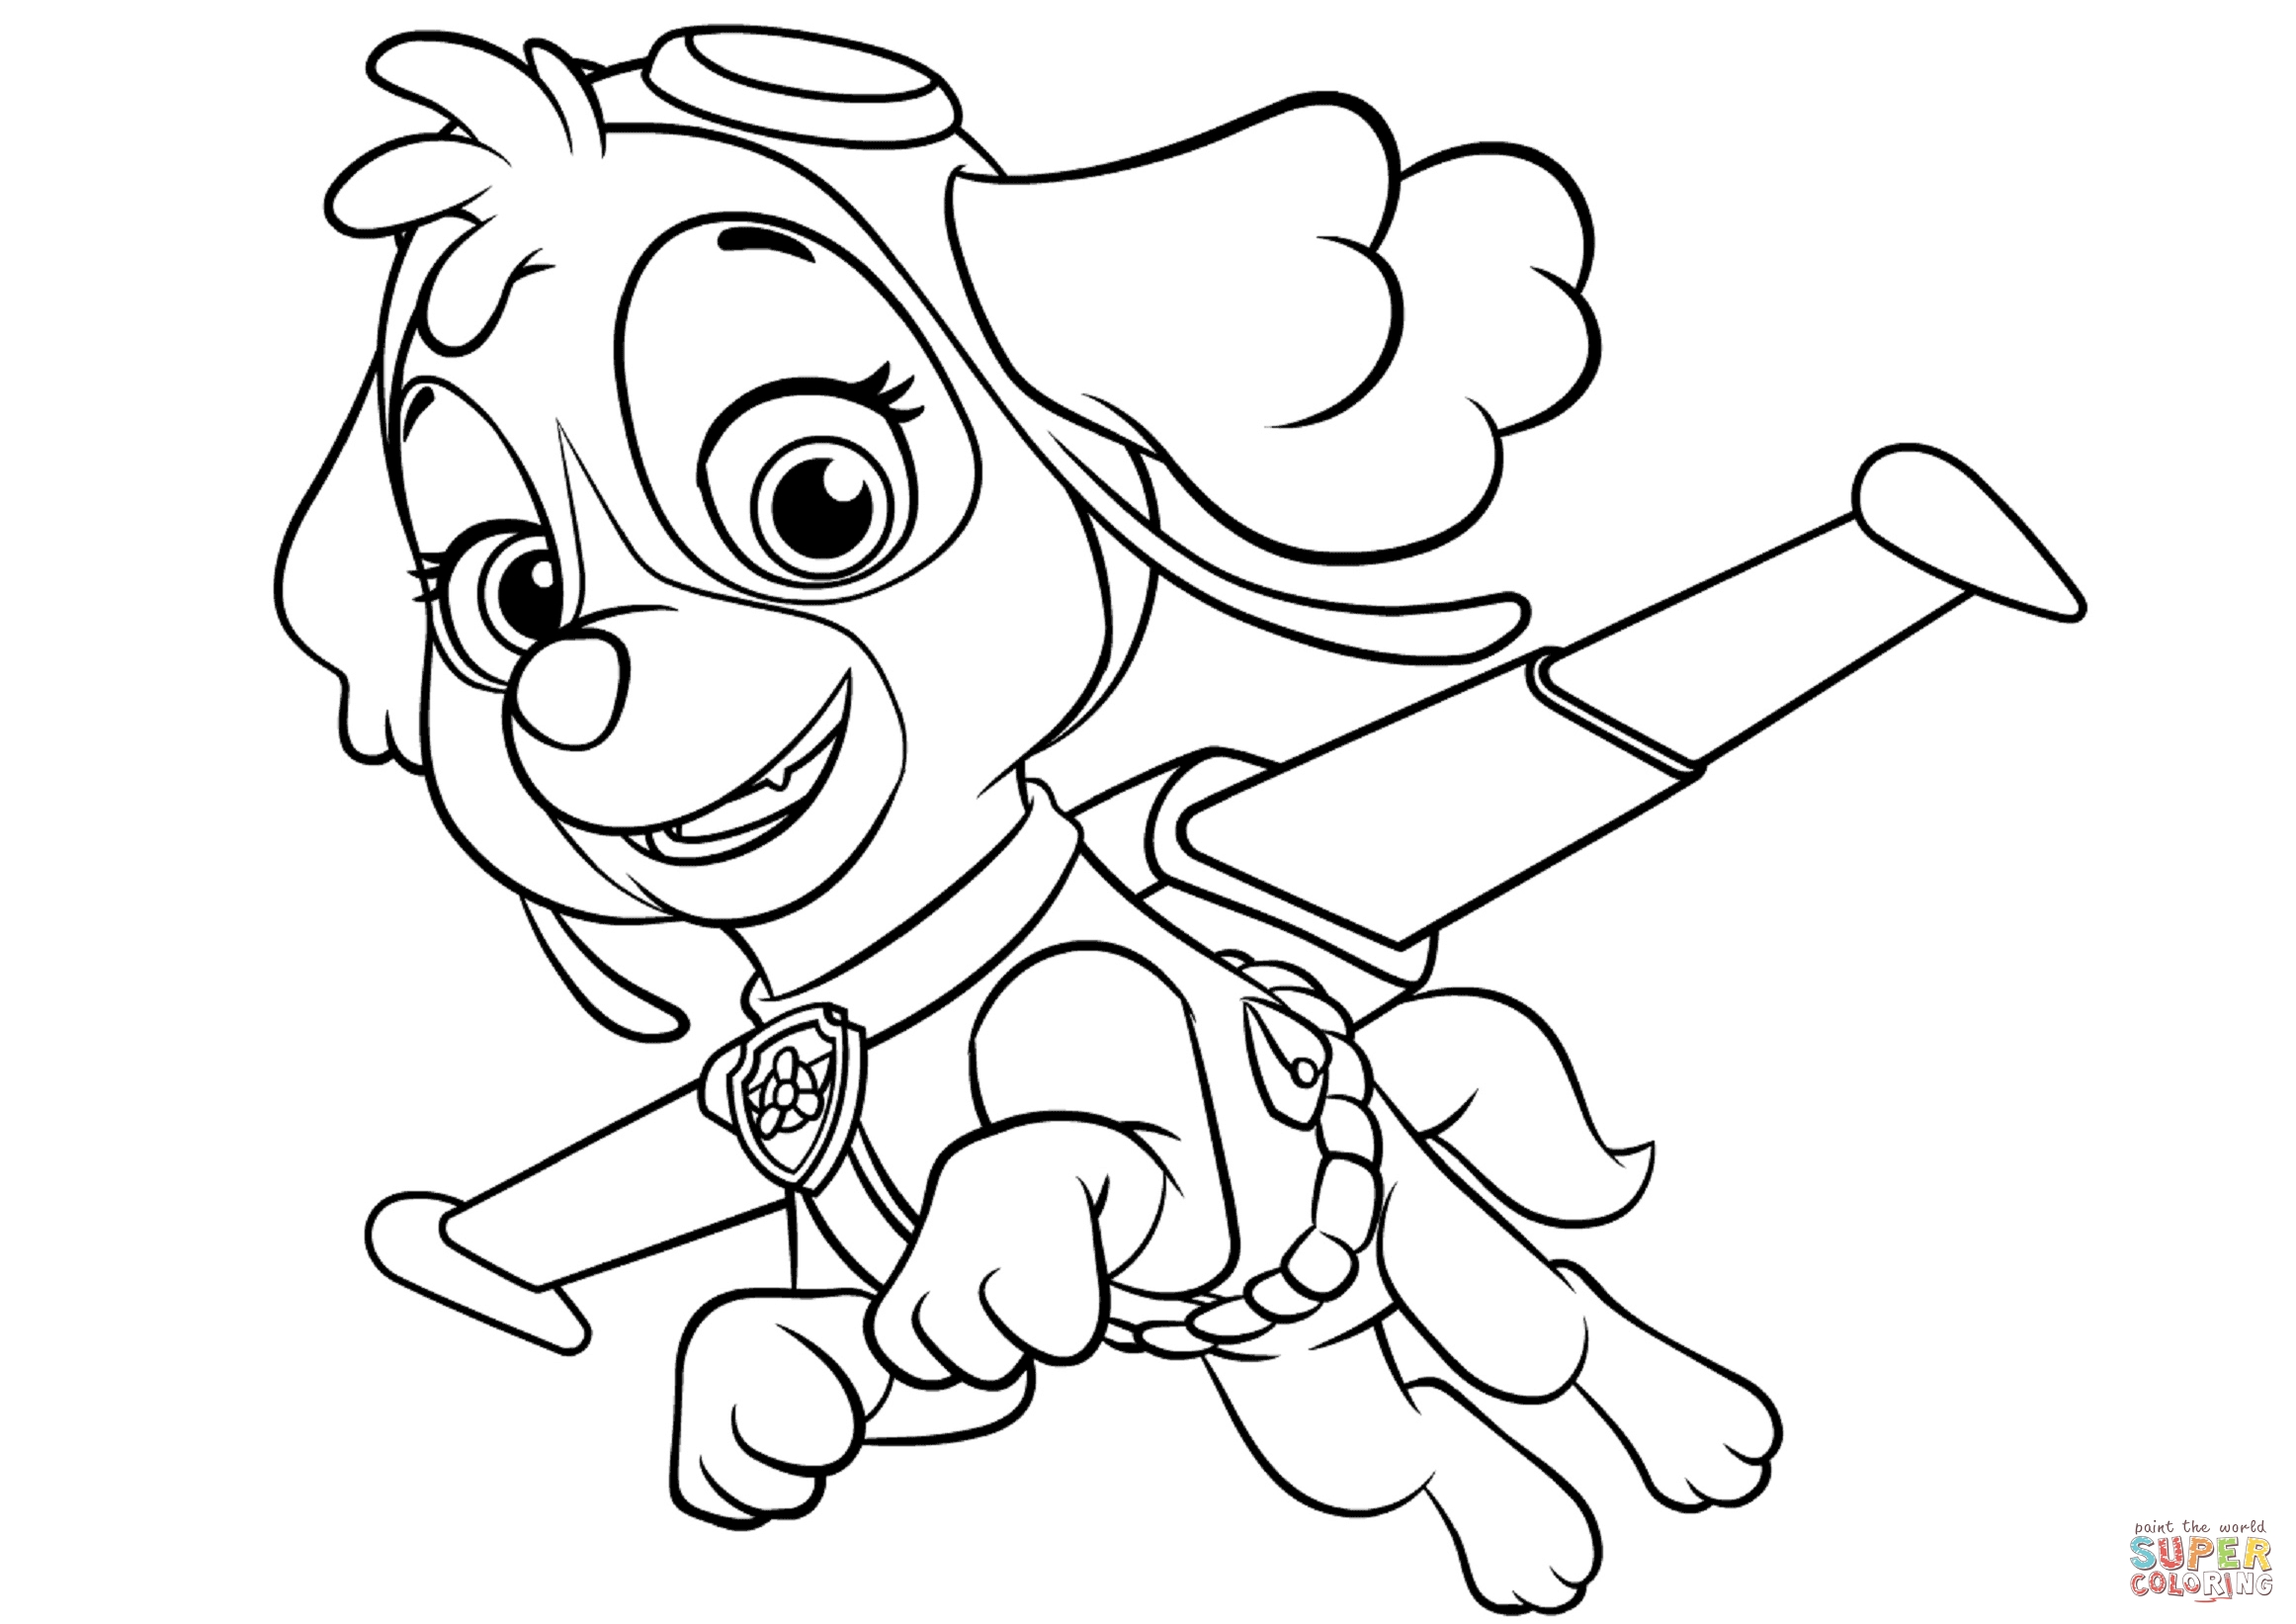 Skye Coloring Pages - Skye Flying Coloring Page